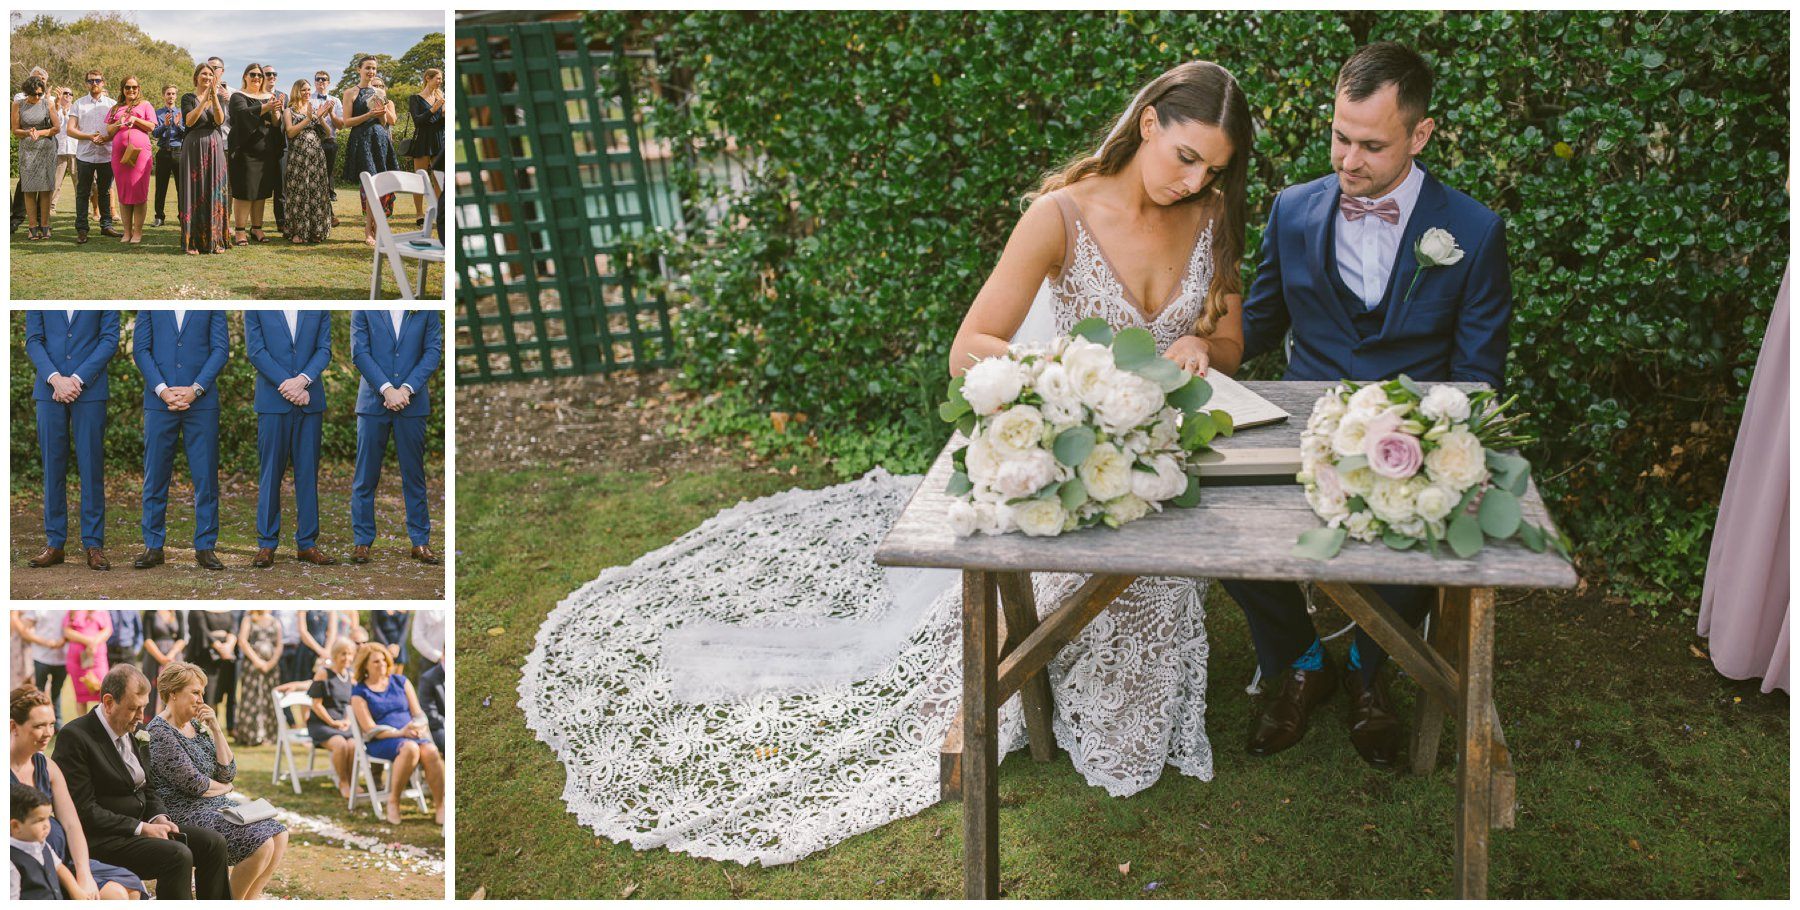 Patrick and Hollie, Coolangatta estate wedding, south coast wedding photographer, Southern Highlands wedding photographer, southern highlands photographer, registry, sign